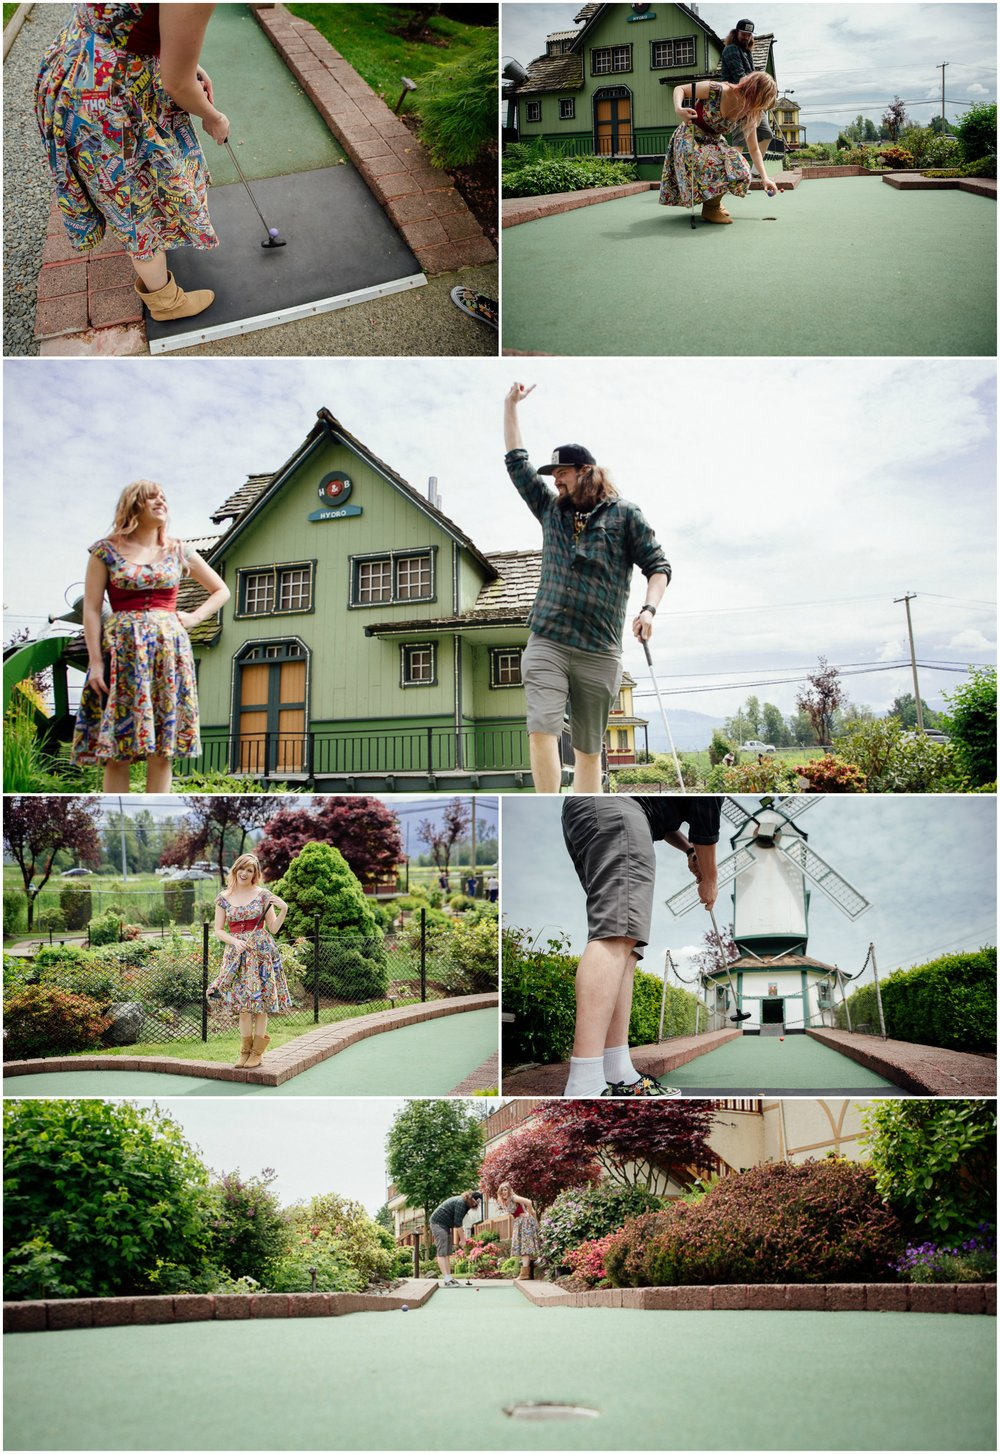 Mini putt collage of couple   Castle Fun Park Documentary Engagement Photography, minigolf date by Mimsical Photography. Real stories about Real Couples that are just as unique as they are. #unique #vibrant #personality #nerd #princess #ecclectic #gamer #couple #minigolf #vancouver #candid #storytelling #connect #datesforcouples #arcade #arcadedate